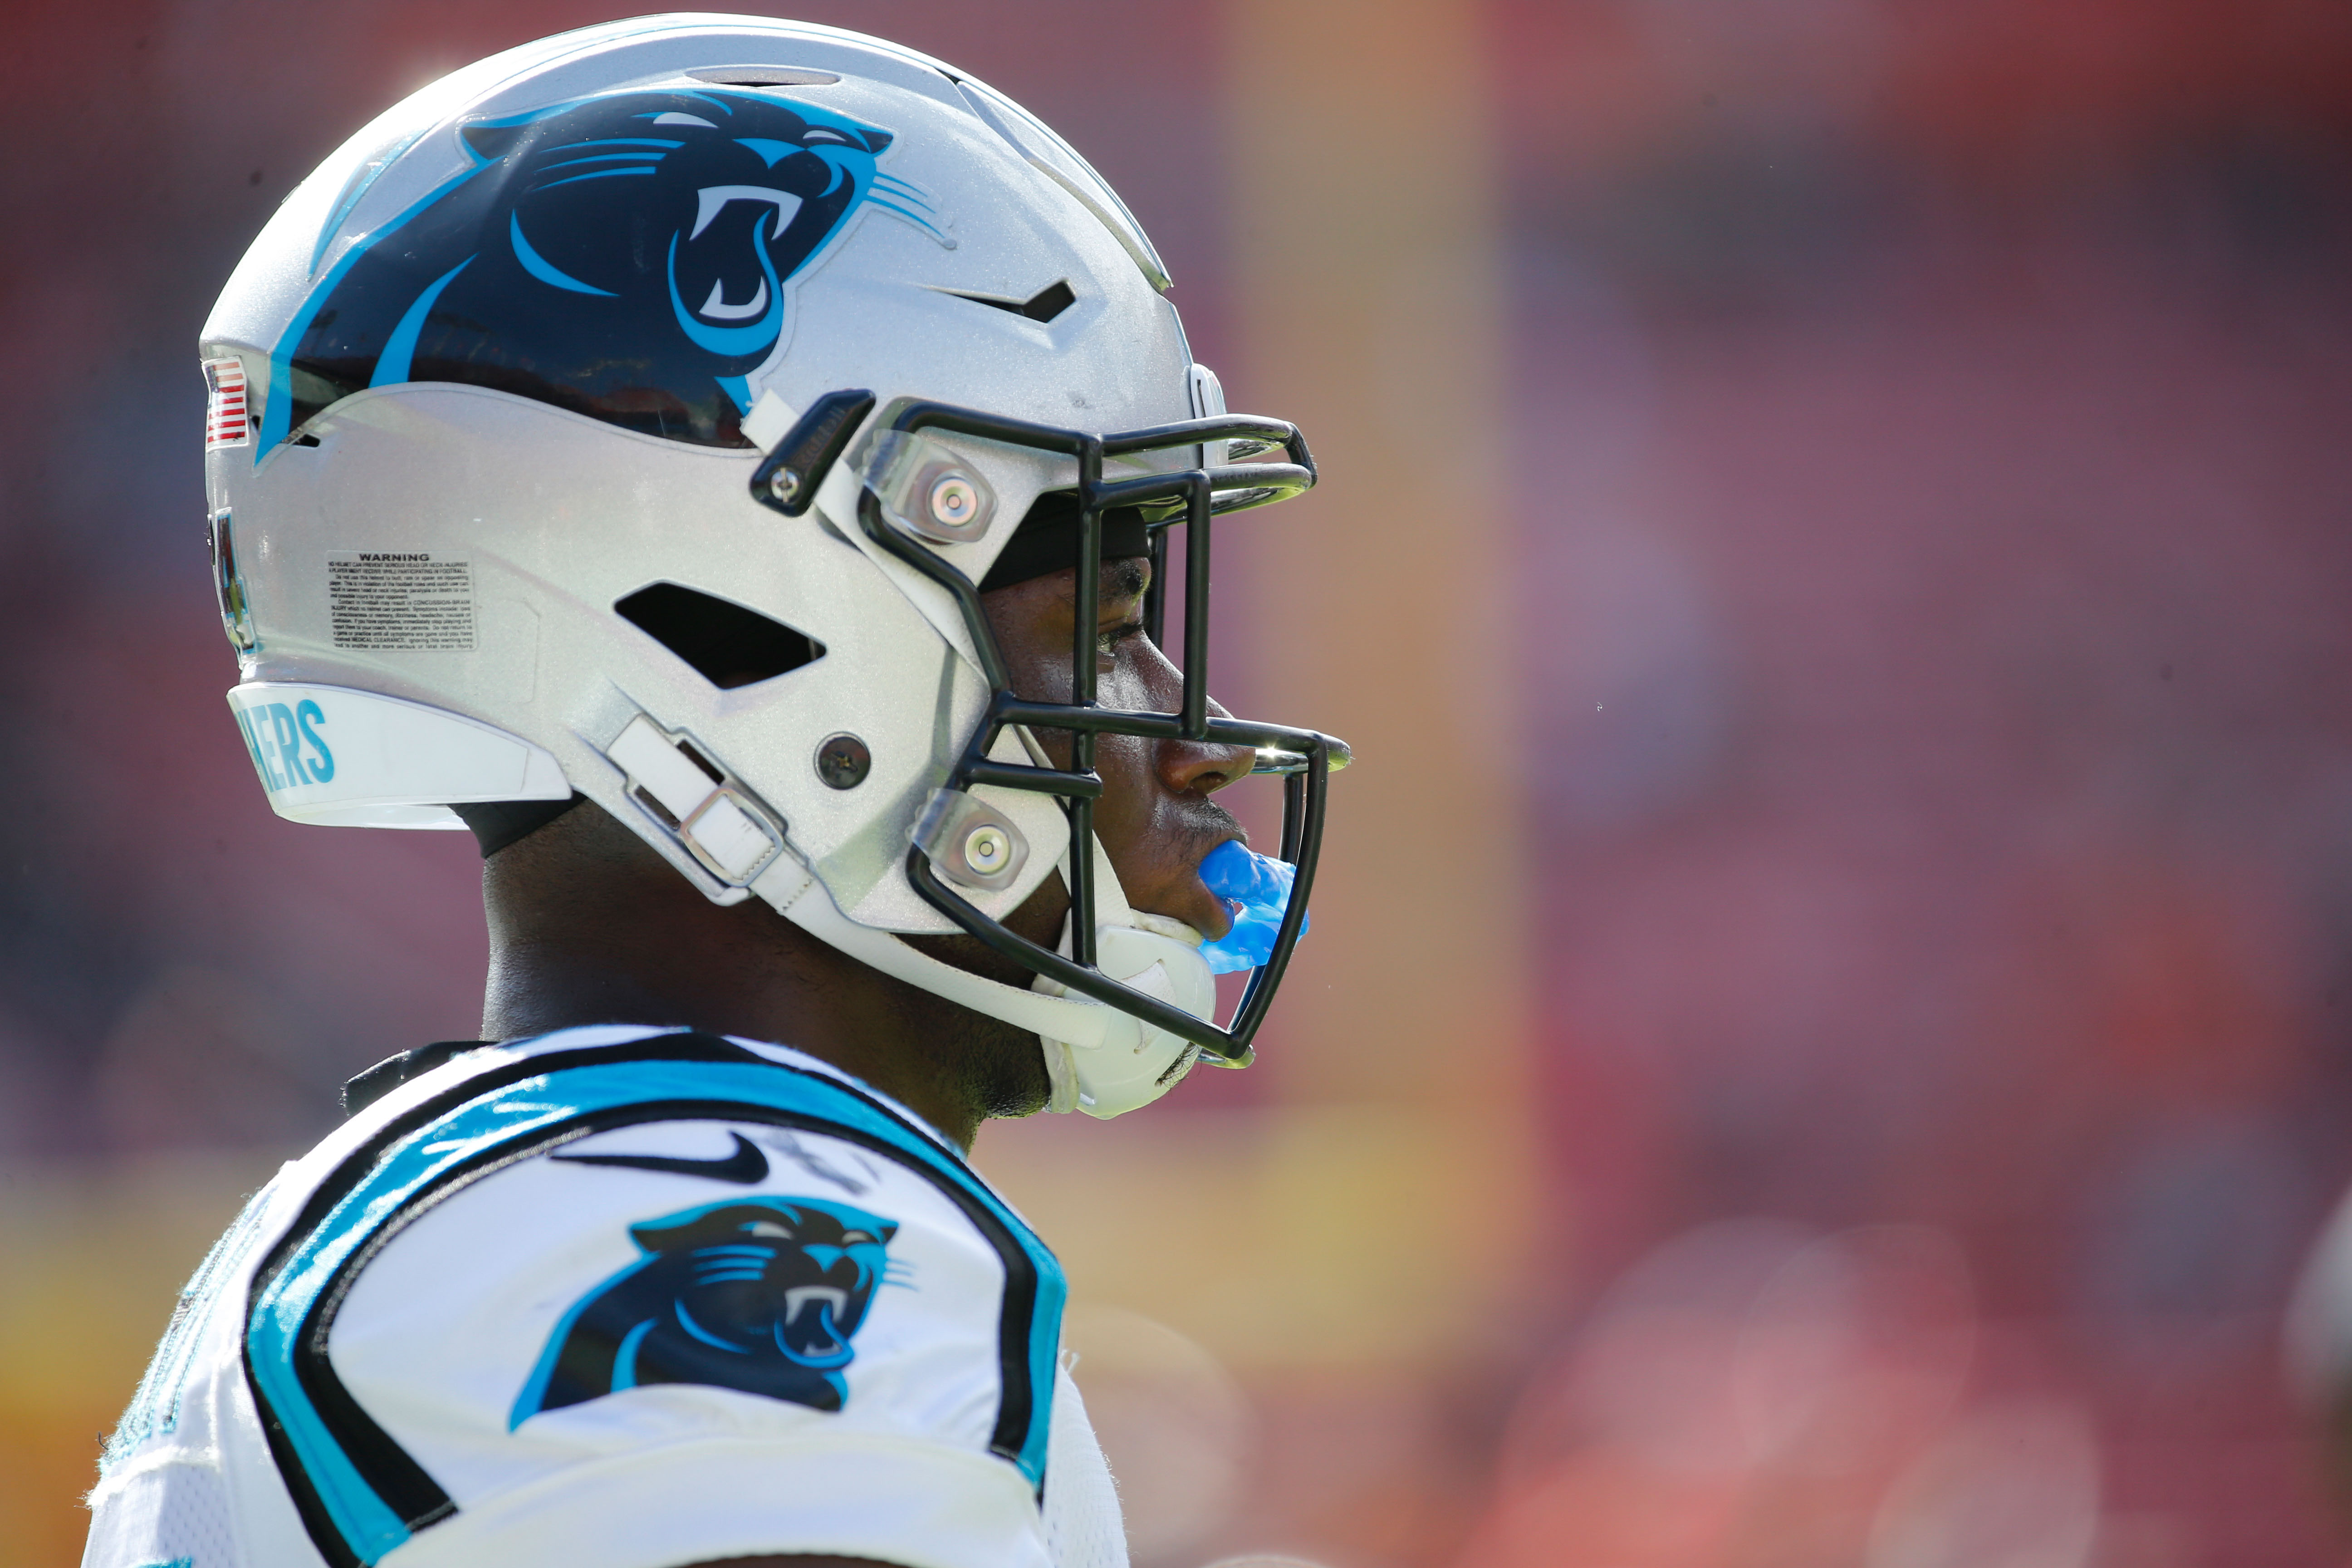 9839204-nfl-carolina-panthers-at-tampa-bay-buccaneers